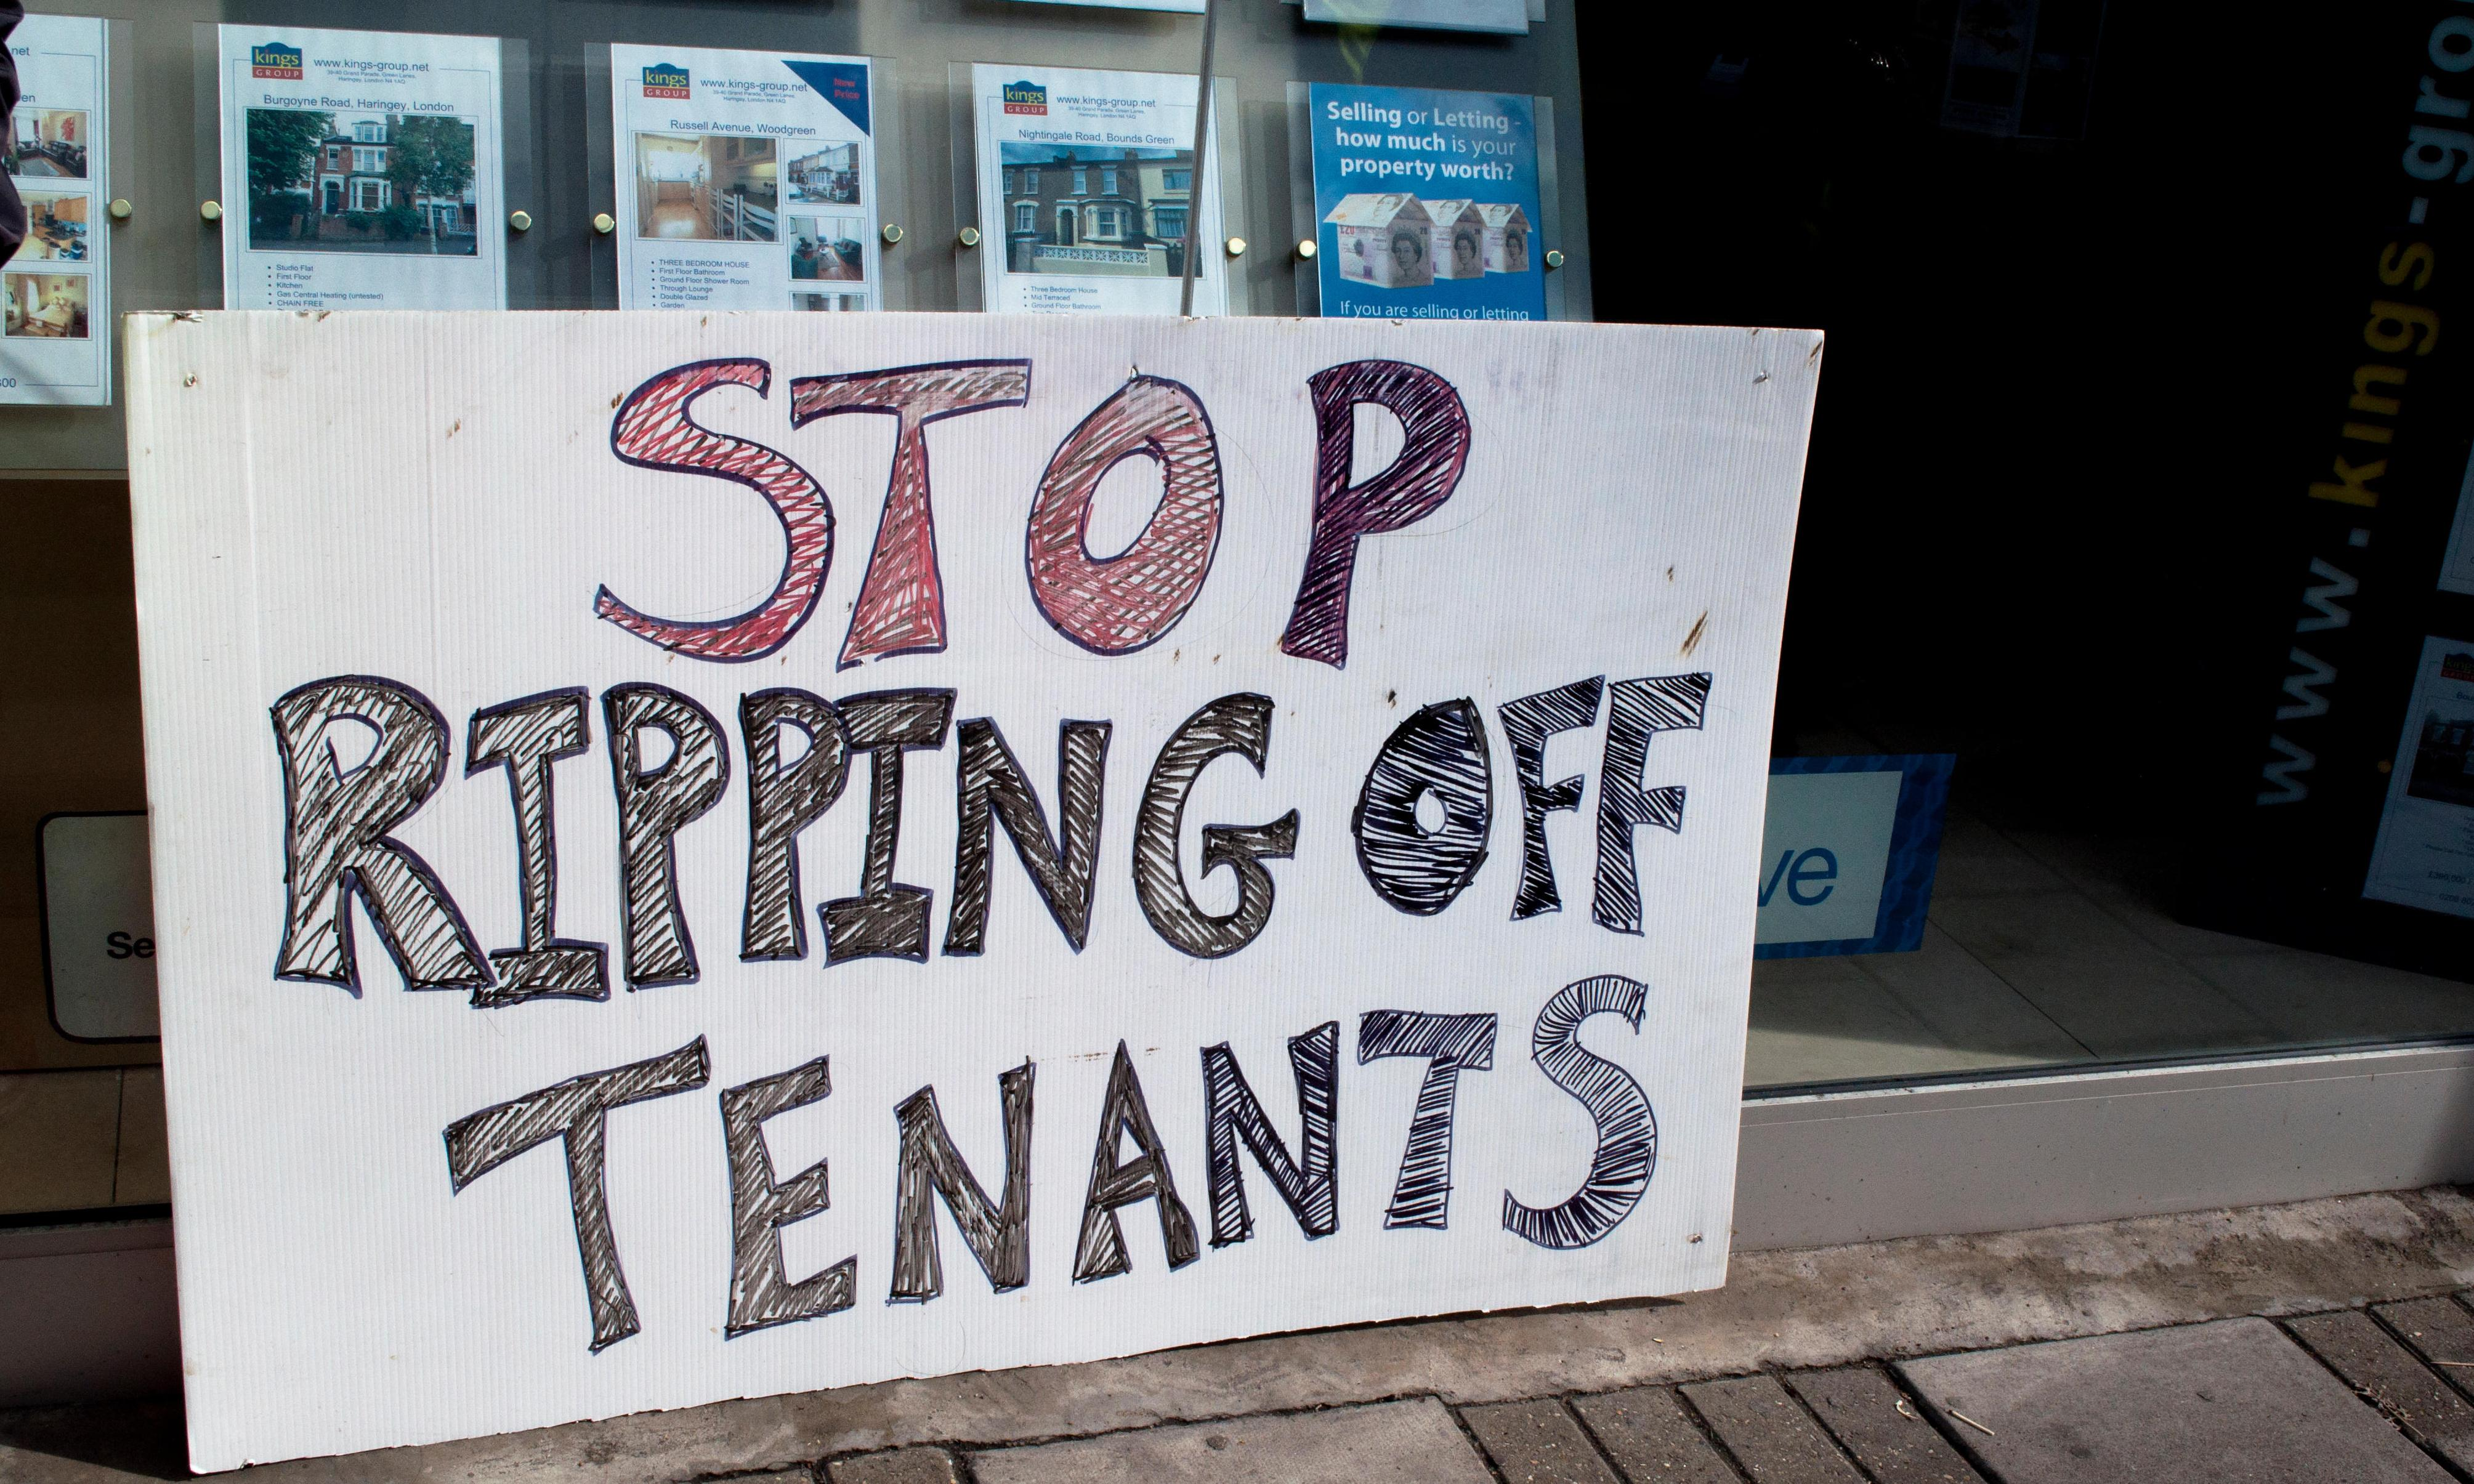 Tell us about your worst experiences of letting agents and property viewings